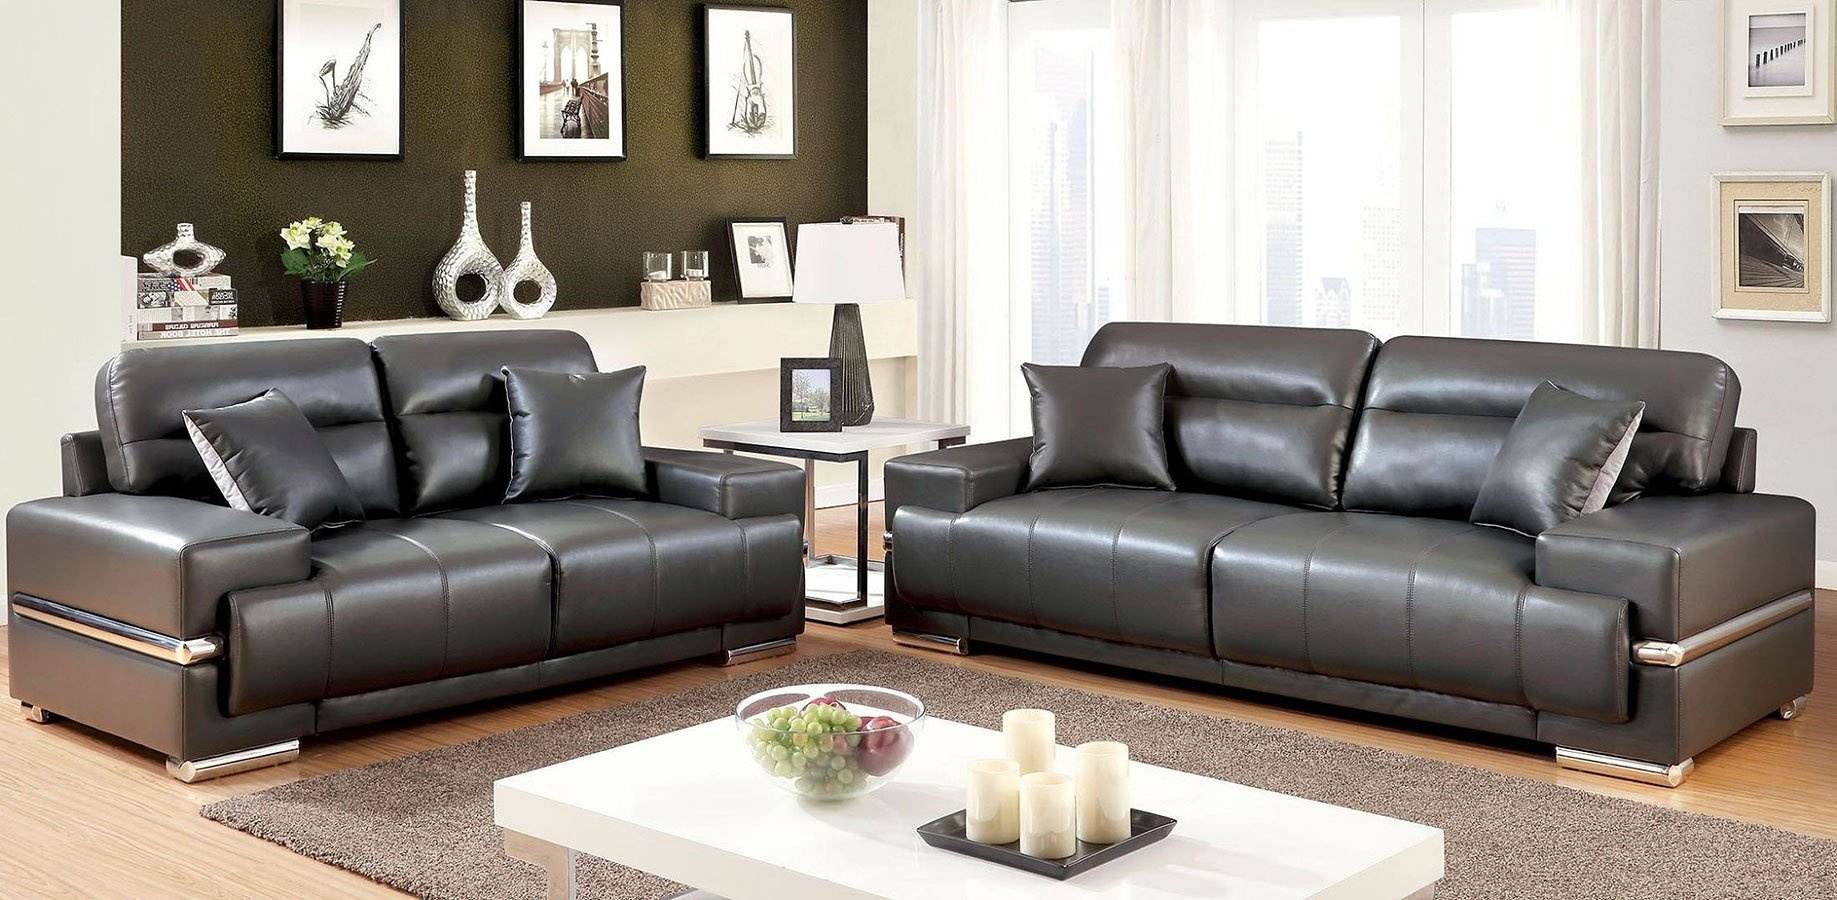 Zibak living room set gray living room sets living for M s living room furniture